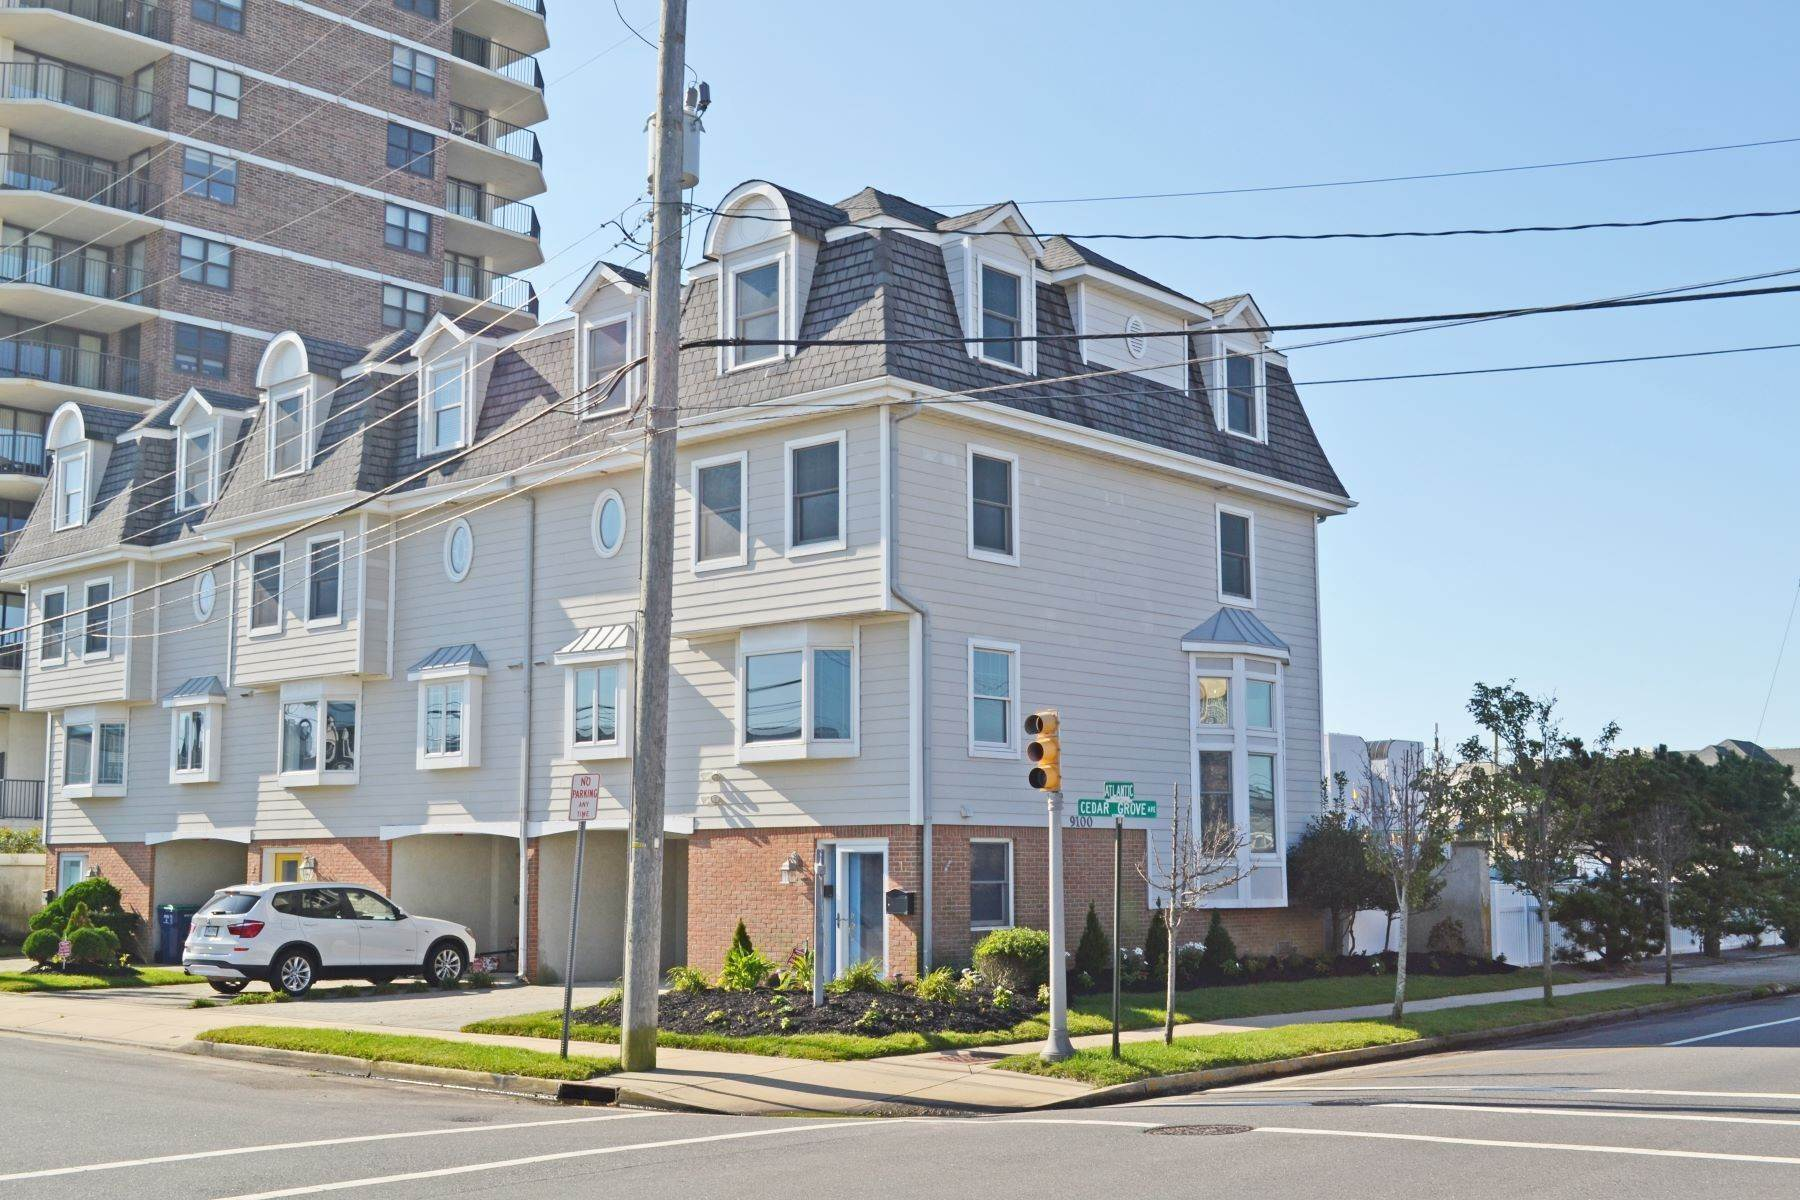 Property for Sale at Island House 9100 Atlantic, #1 Margate, New Jersey 08402 United States